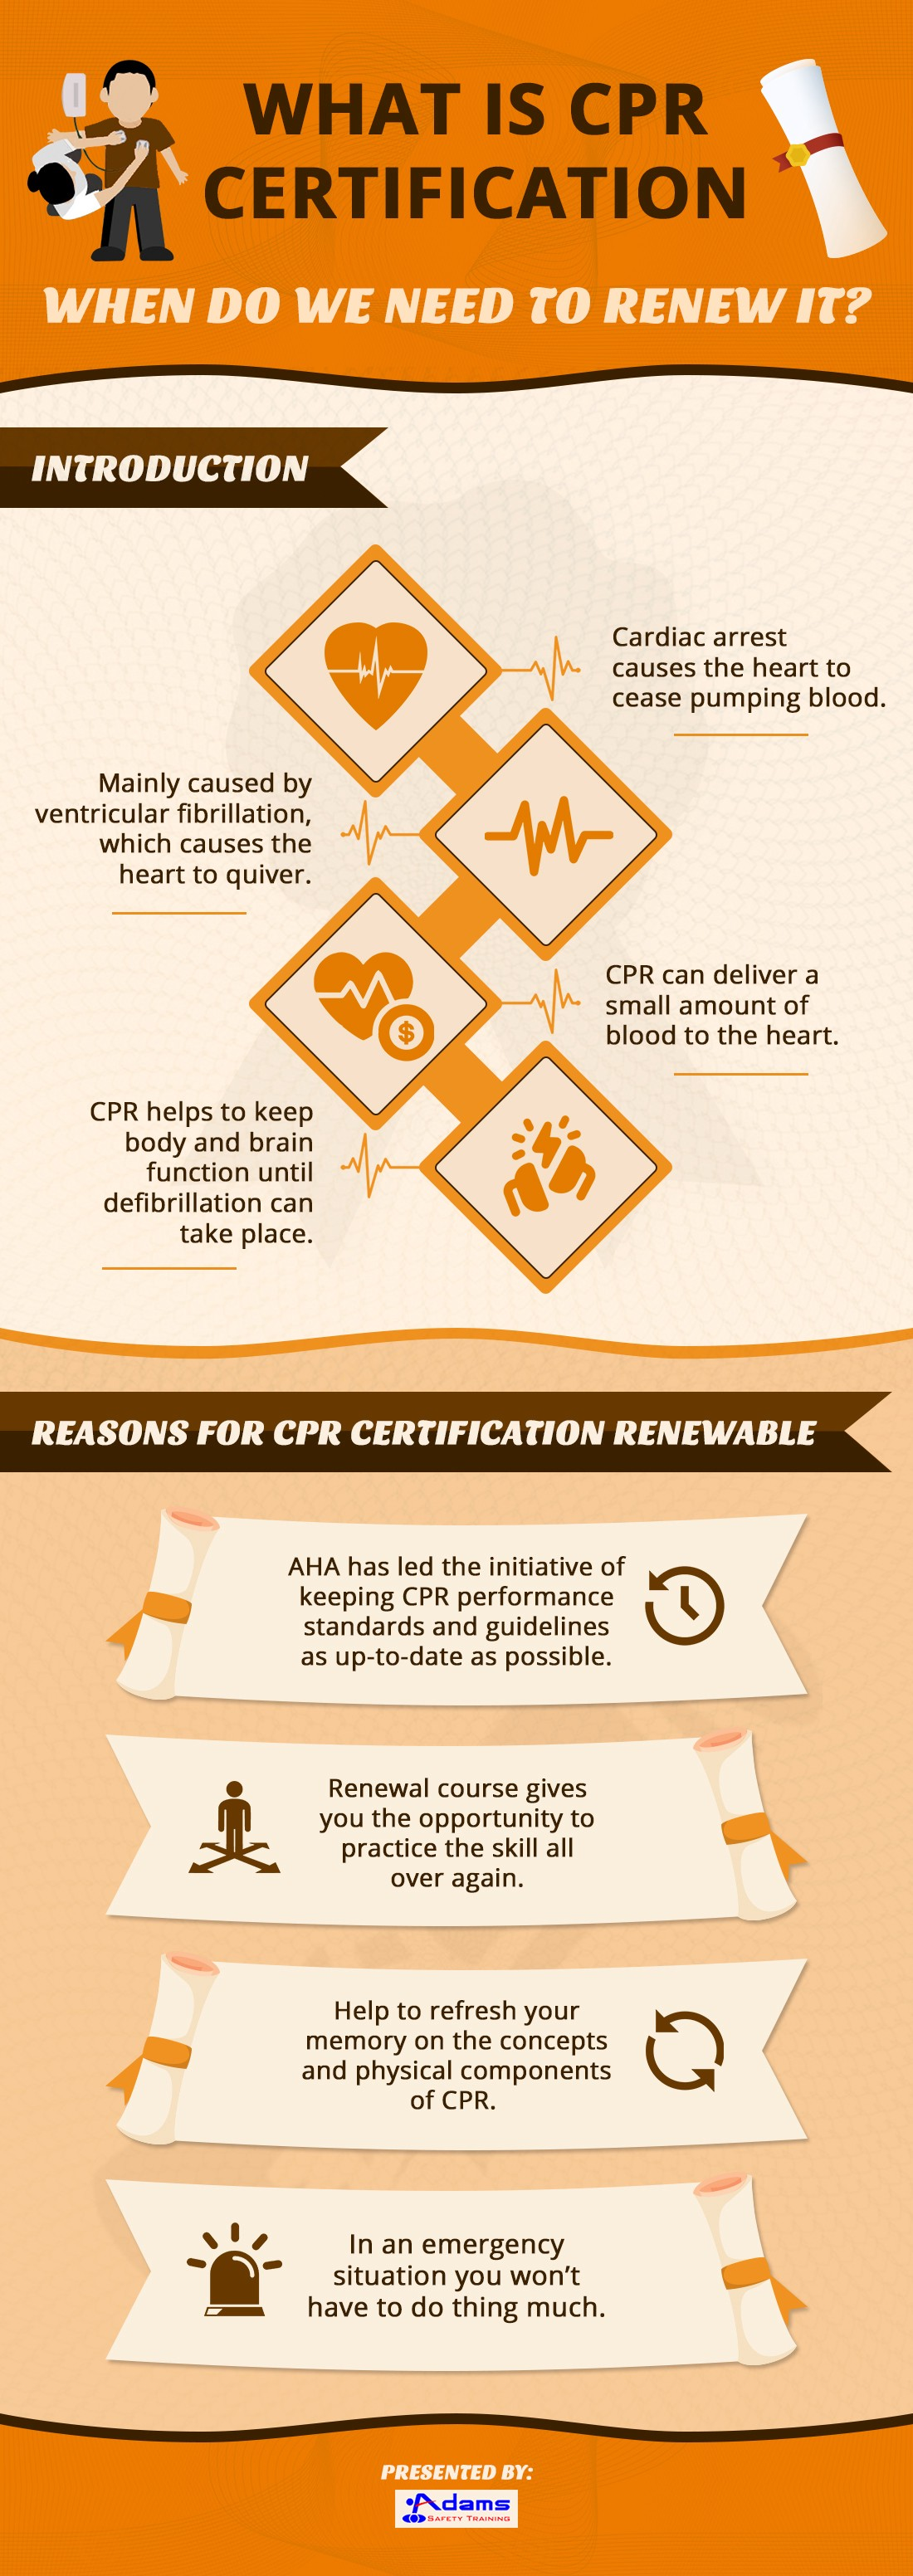 Cpr Certification Is A Smart Career Move Caitlyn Williams Medium